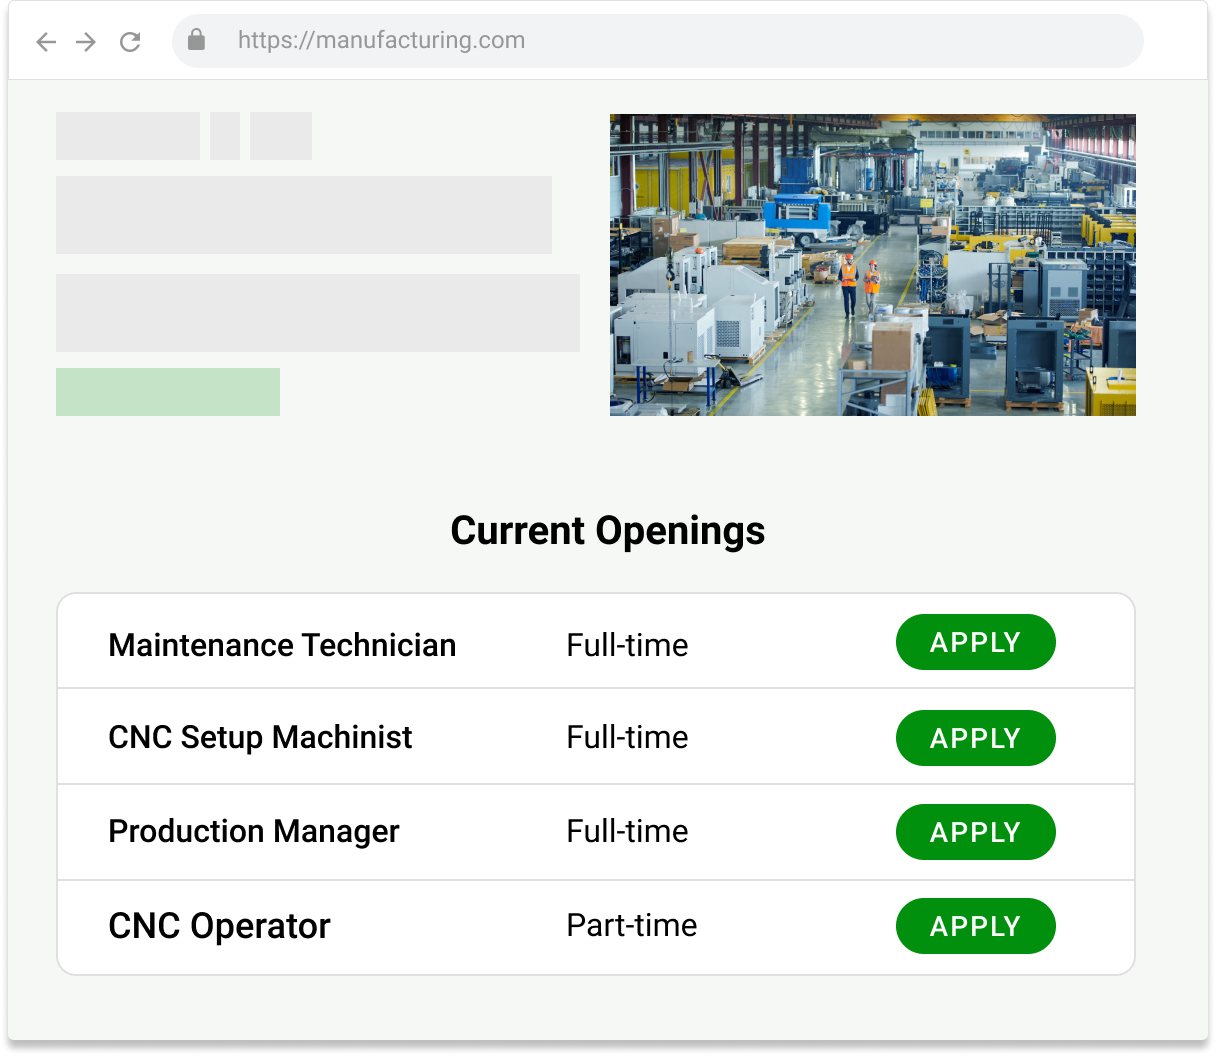 Applying for a position through FactoryFix is simple.